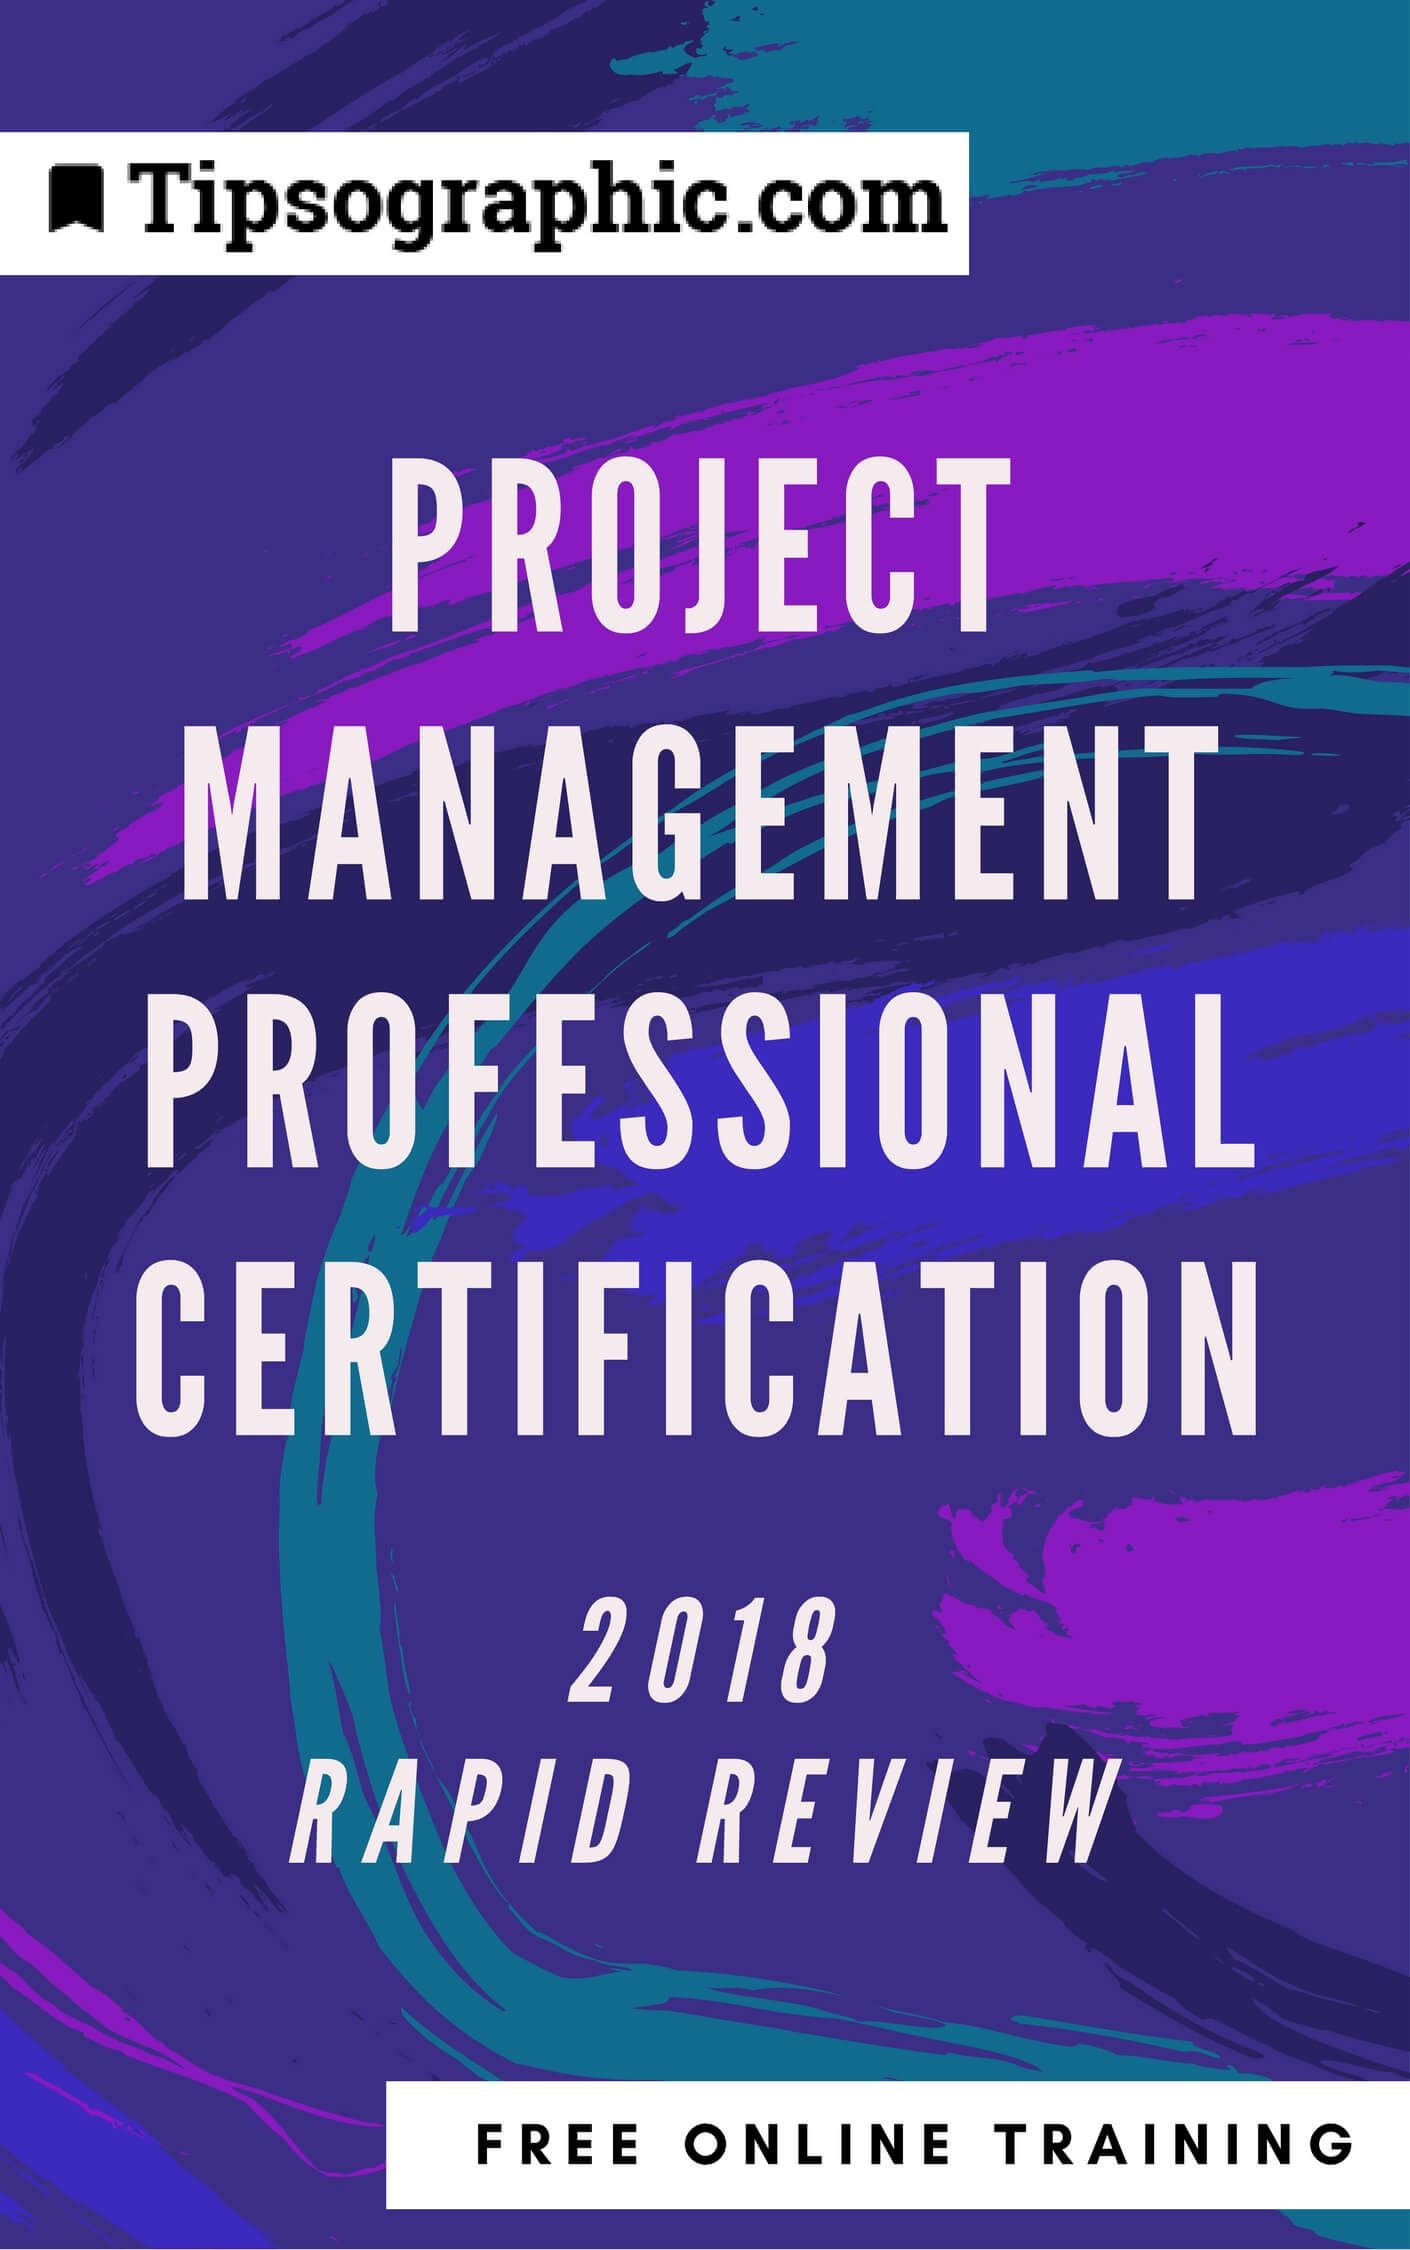 Pmp certification conduct procurements based on pmbok guide project management professional certification 2018 rapid review free online training tipsographic xflitez Gallery